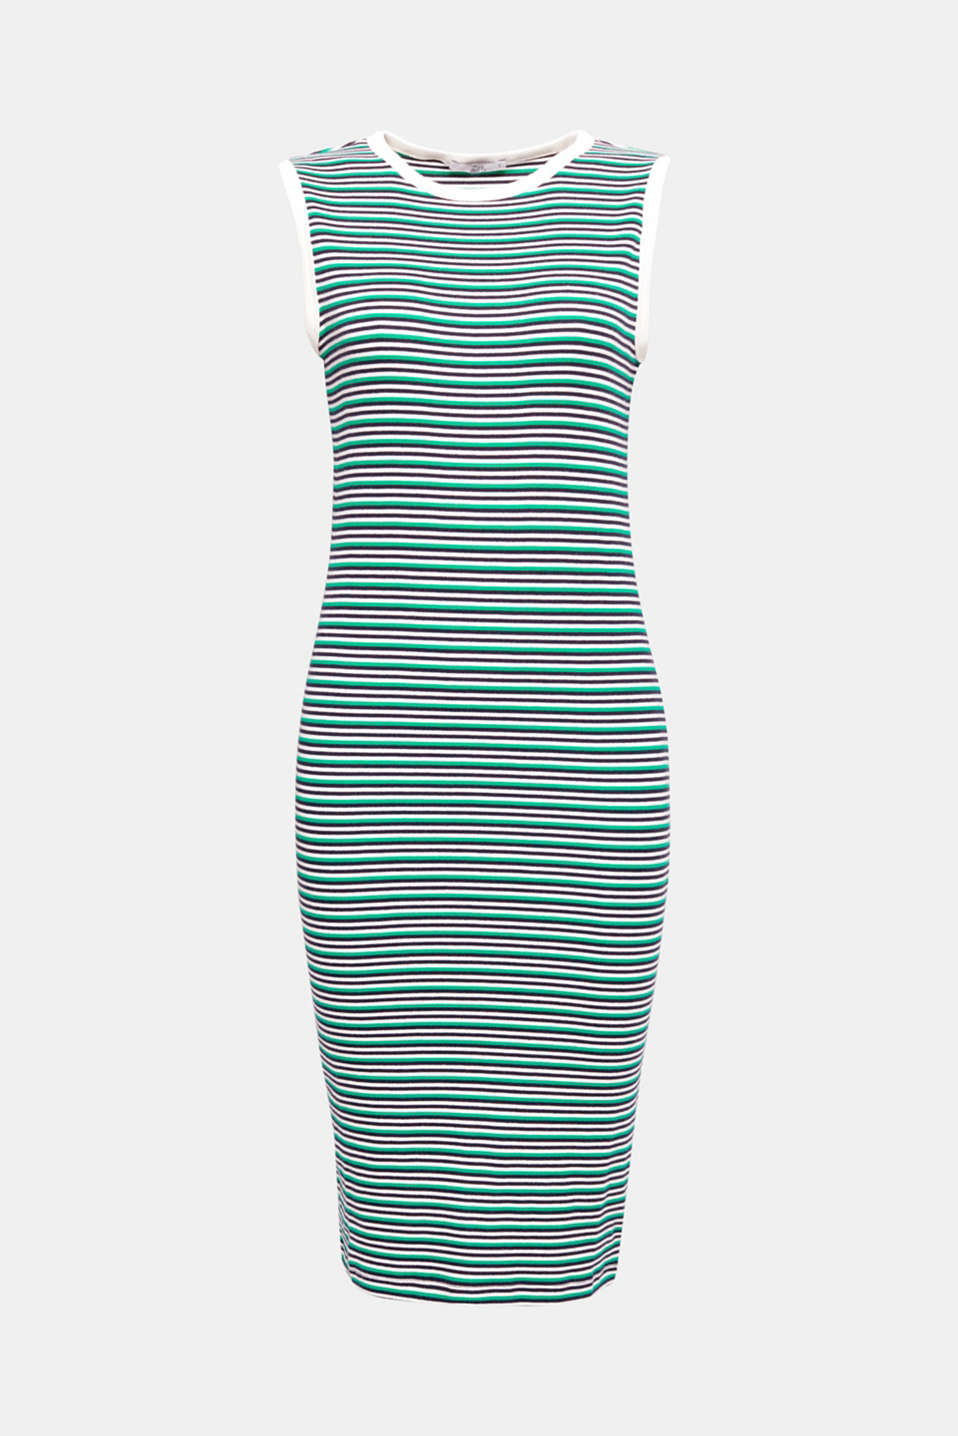 A frisson of freshness, stretchy and comfy! The fine stripe pattern and soft, ribbed jersey composed of stretch cotton give this figure-hugging dress its modern twist.